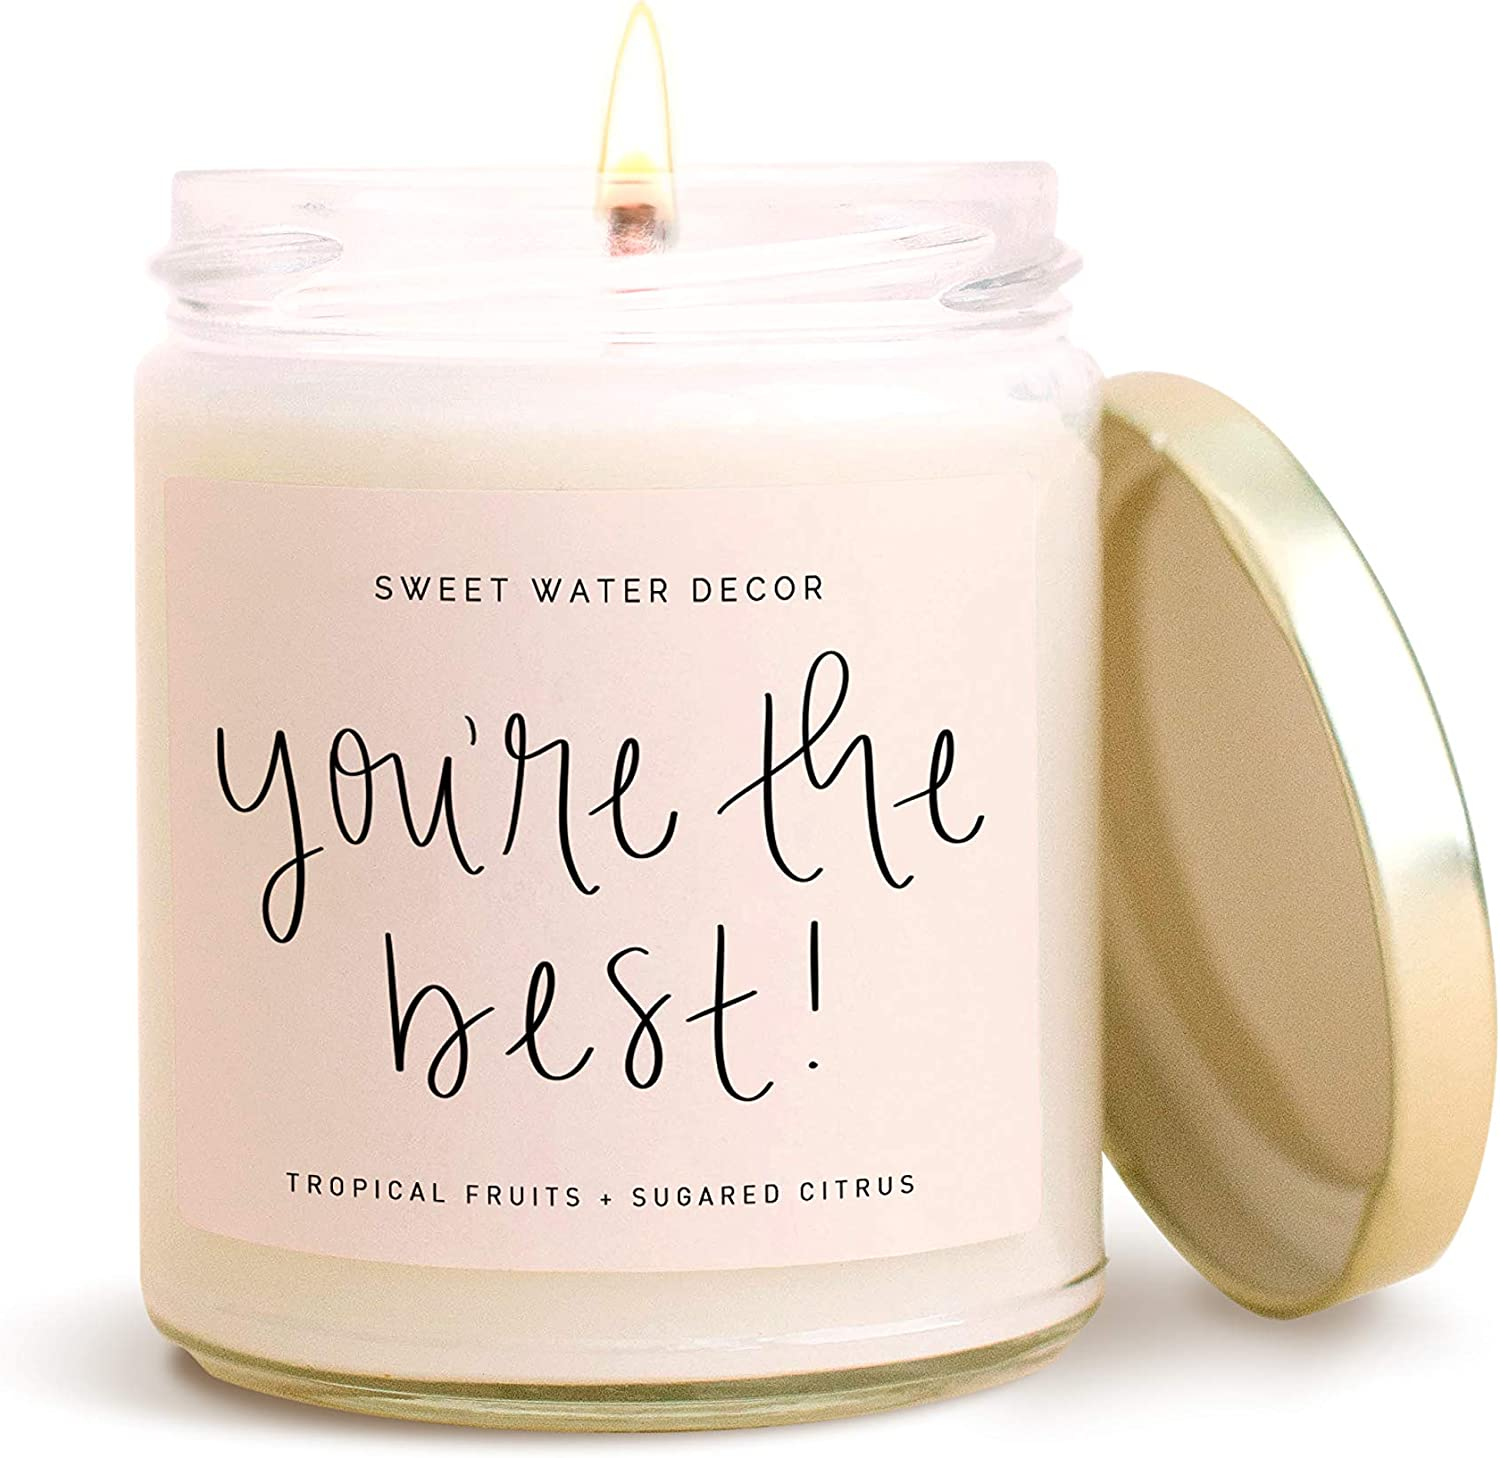 Sweet Water Decor You're The Best Candle | Tropical Fruit and Sugared Orange, Summer Scented Soy Wax Candle for Home | 9oz Clear Glass Jar, 40 Hour Burn Time, Made in The USA